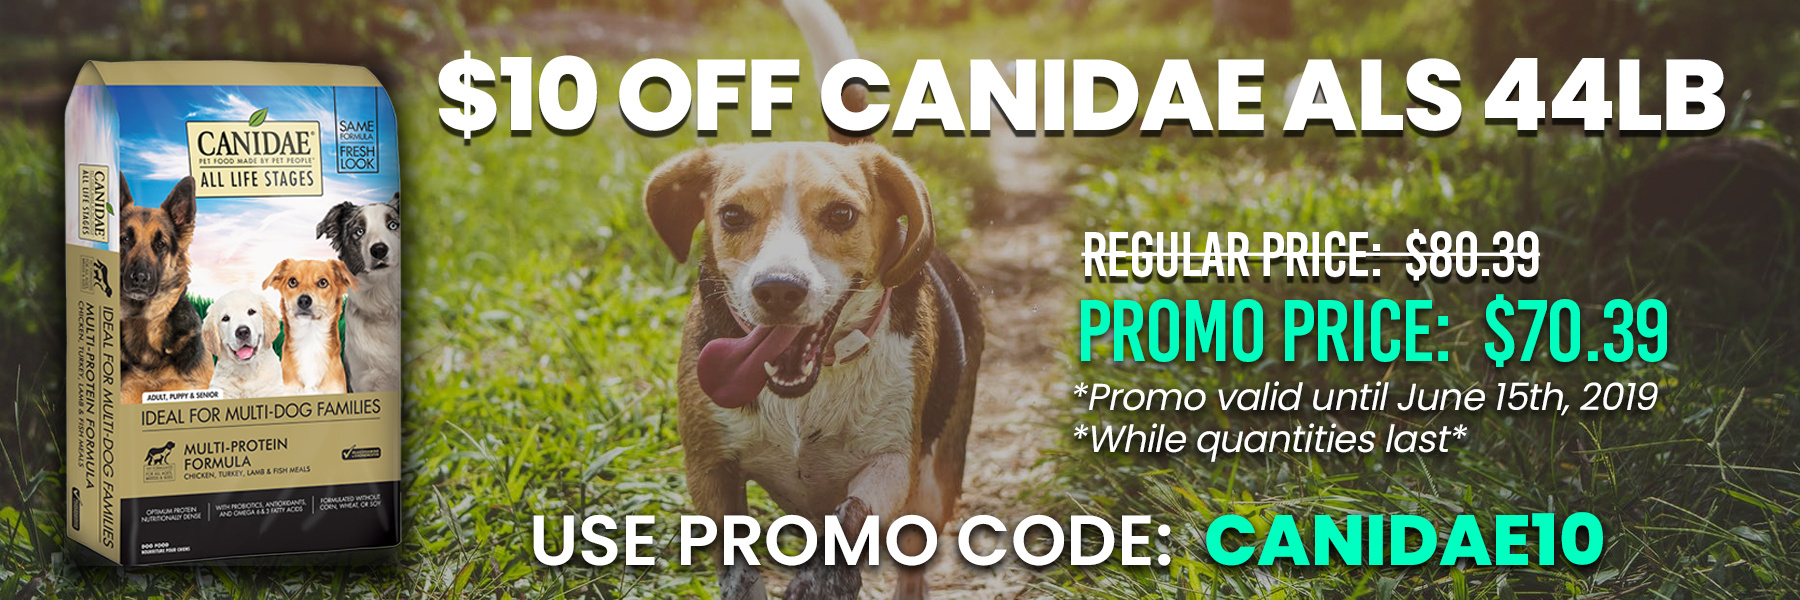 canidae special banner